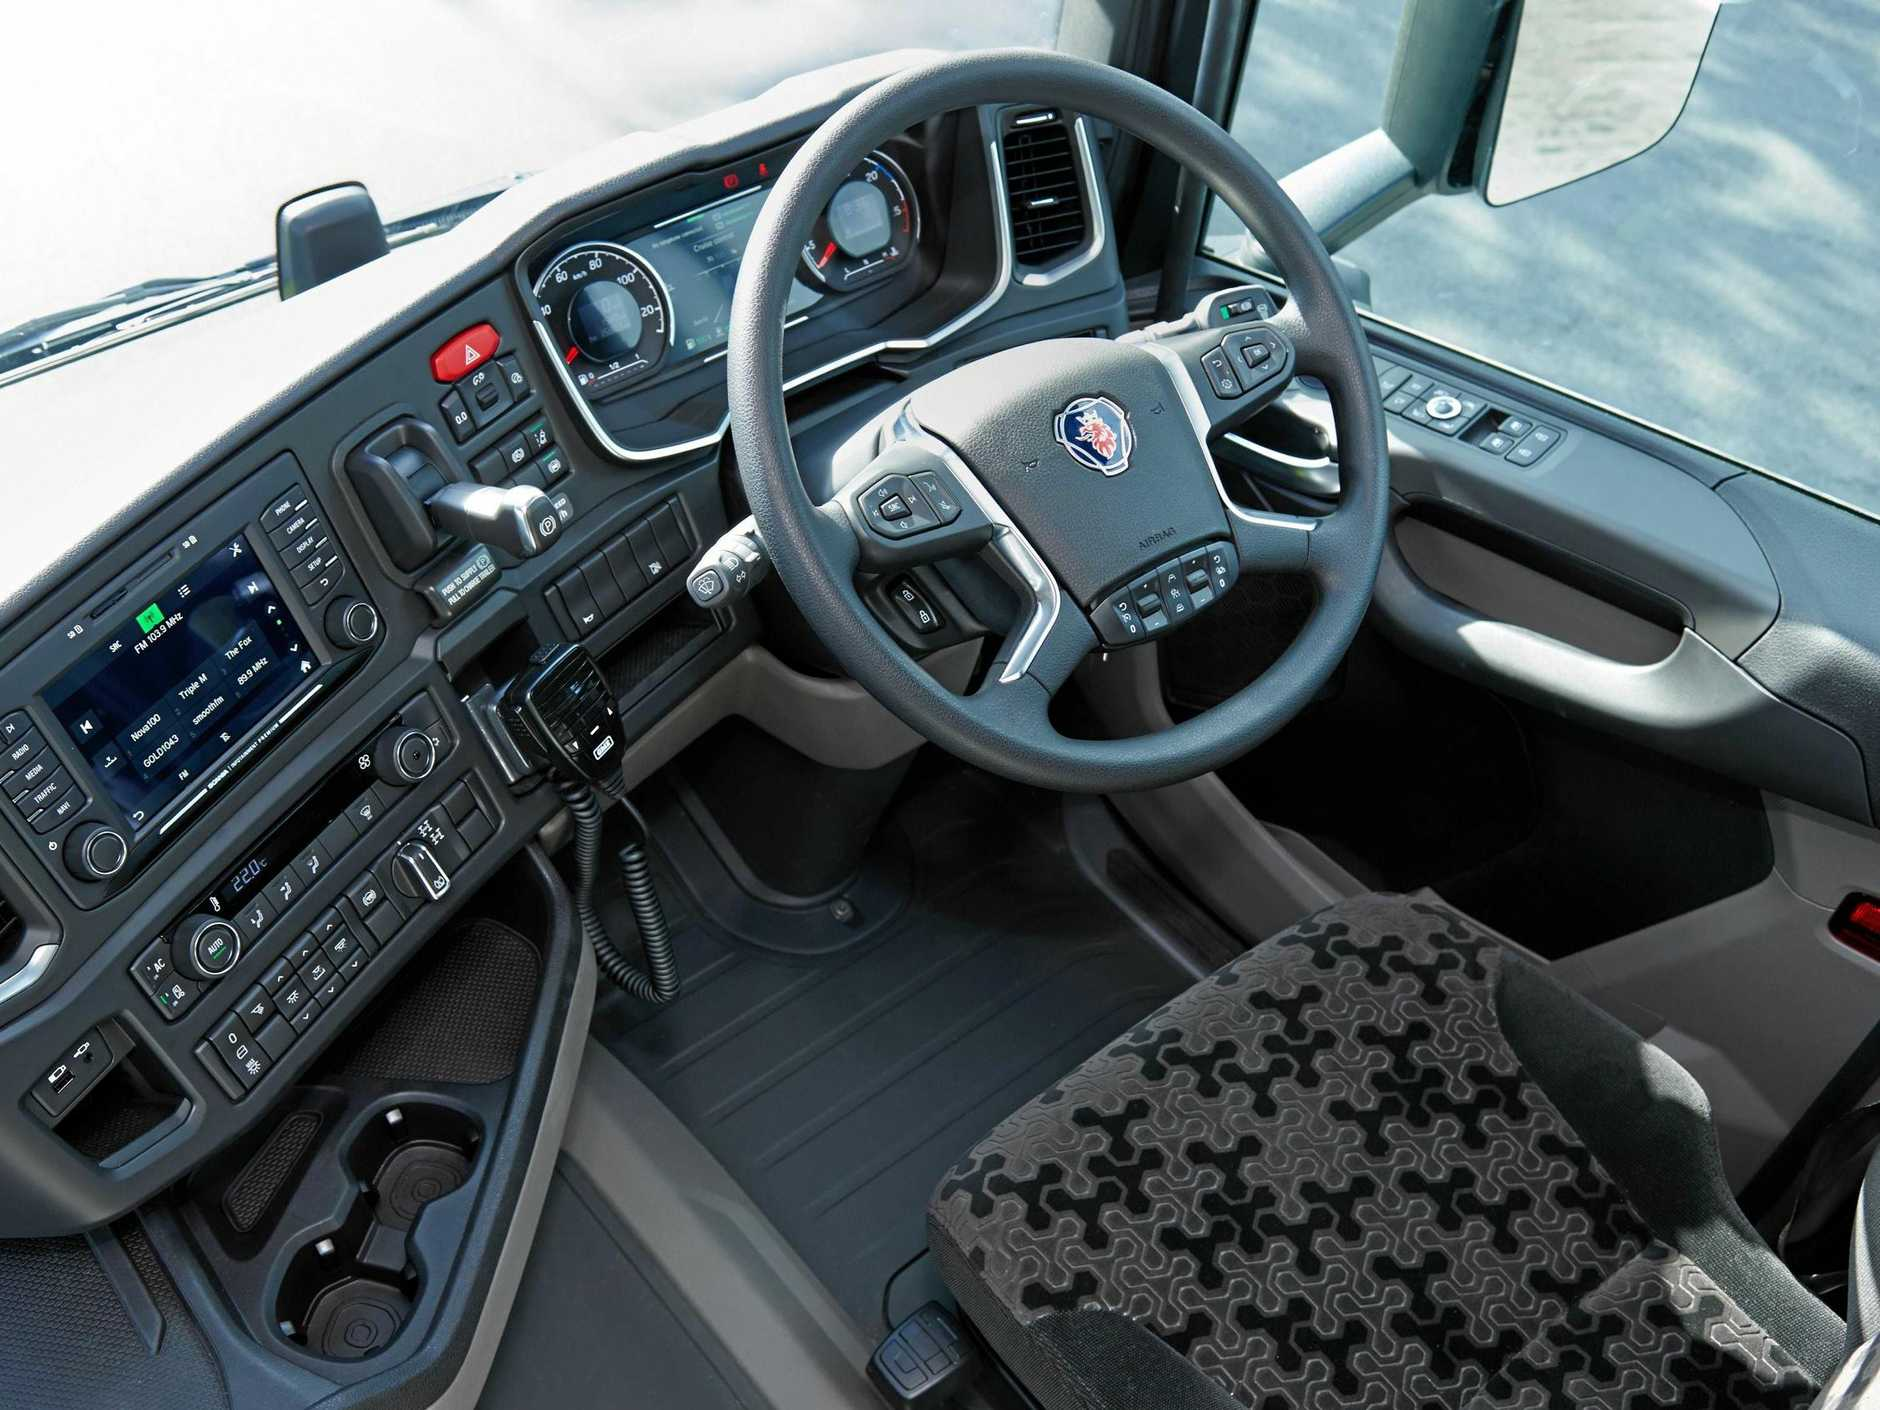 The cockpit of the new-generation Scania offers more improved driver ergonomics over what was a pretty slick cab.